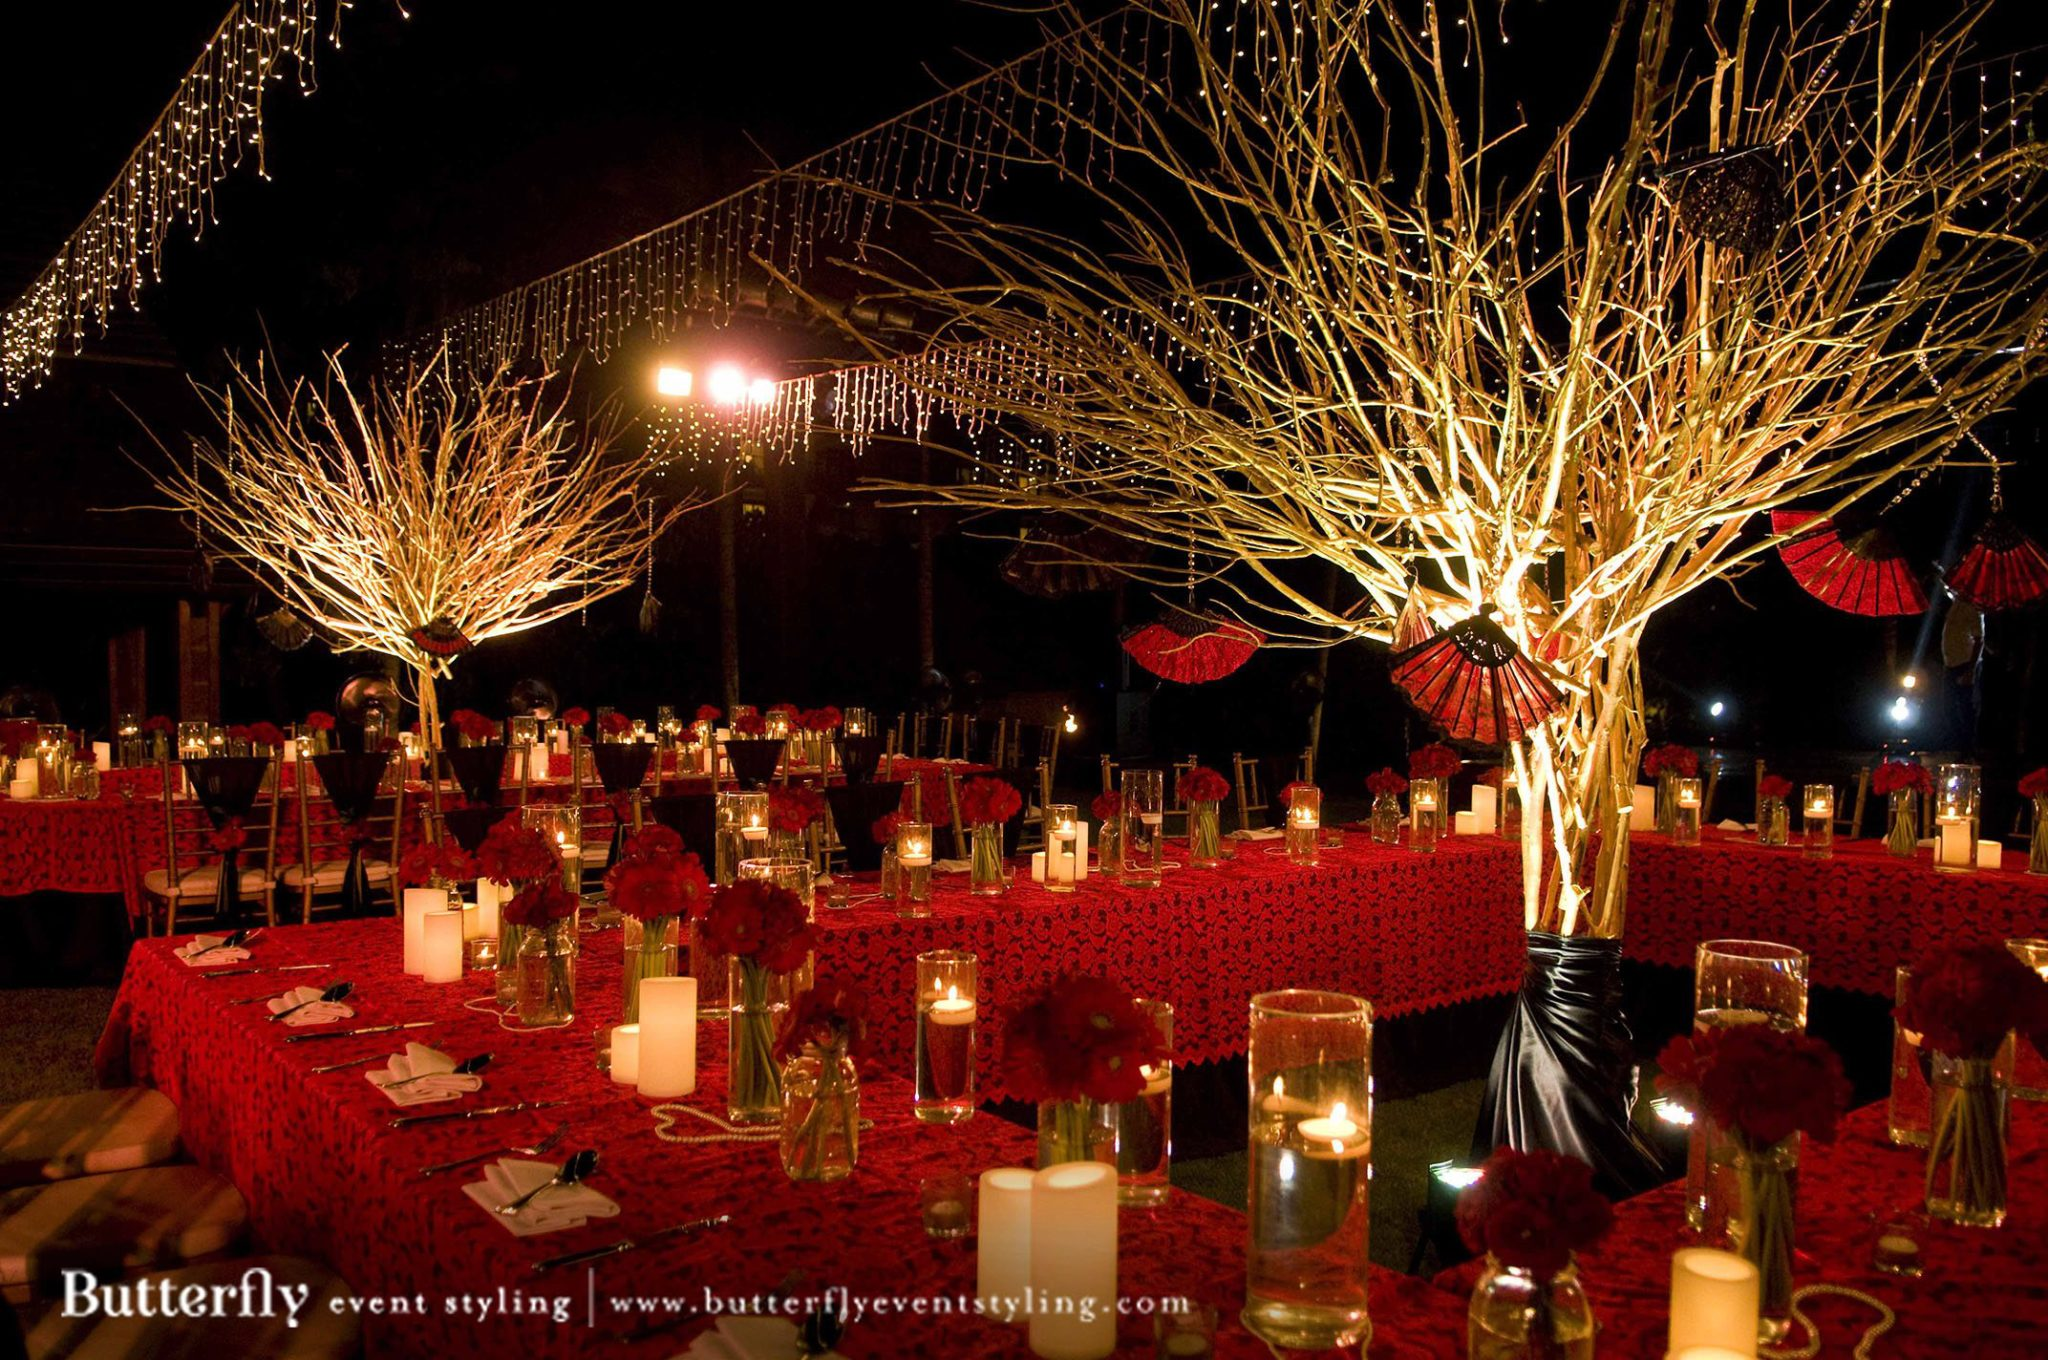 Lights Camera Action Butterfly Event Styling